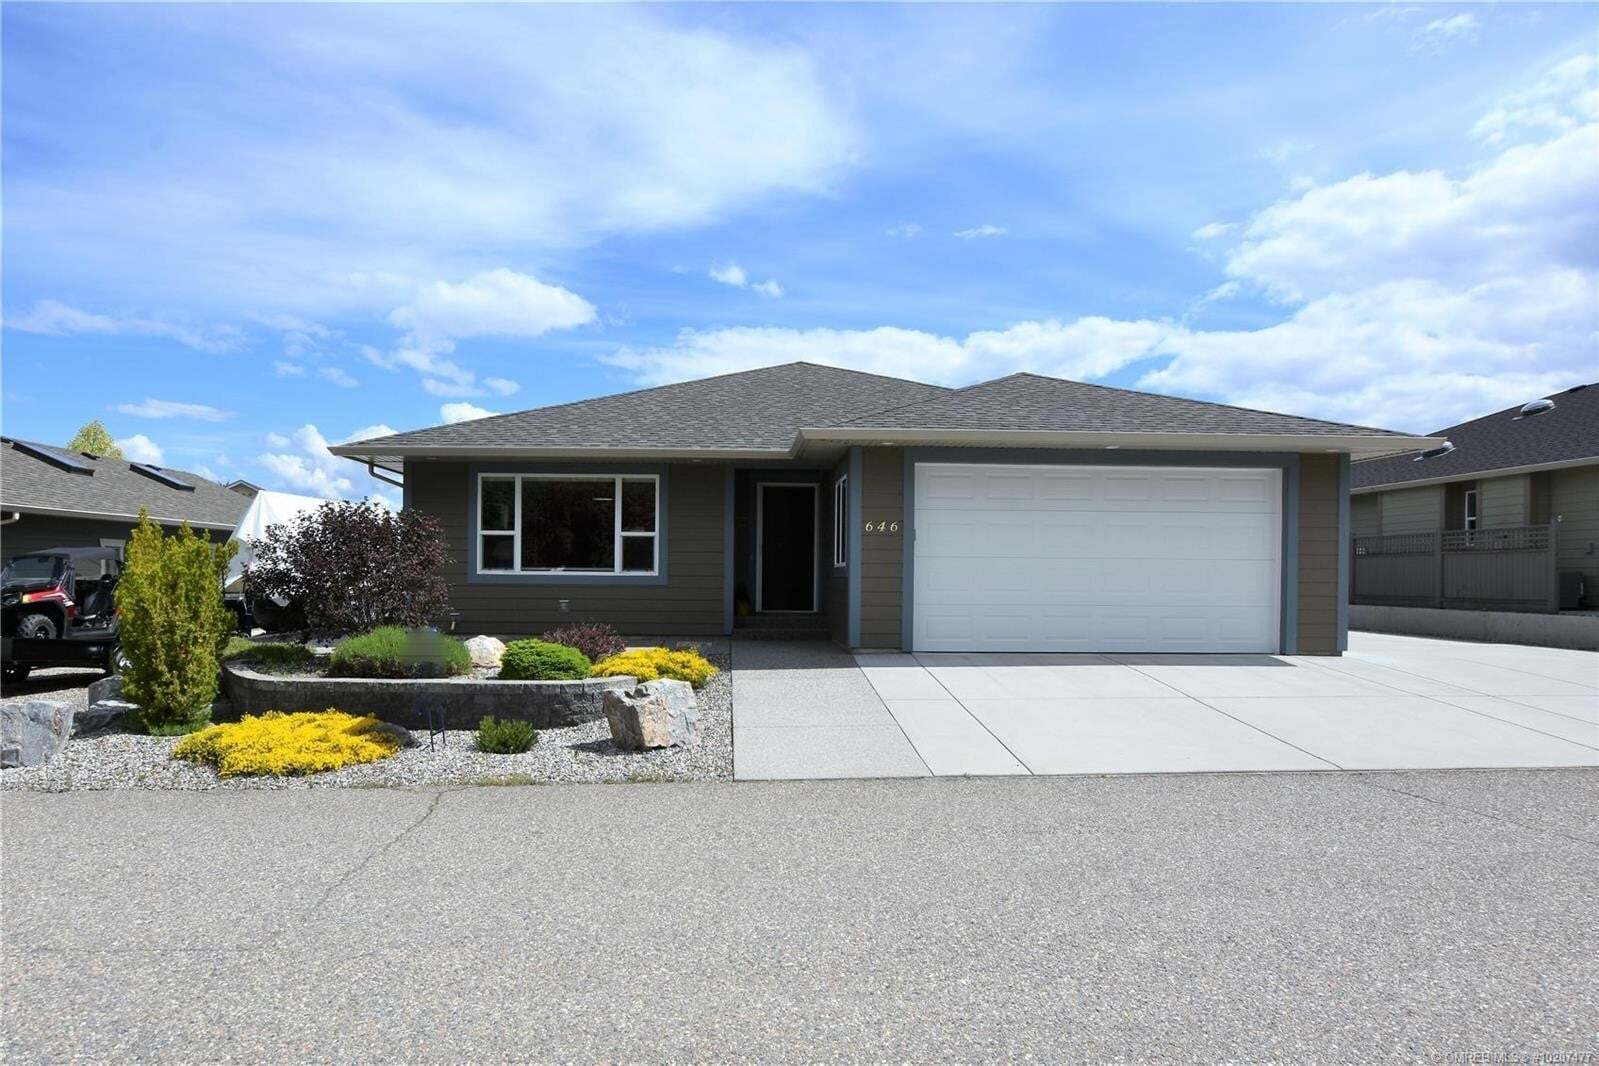 House for sale at 646 Osprey Ave Vernon British Columbia - MLS: 10207477